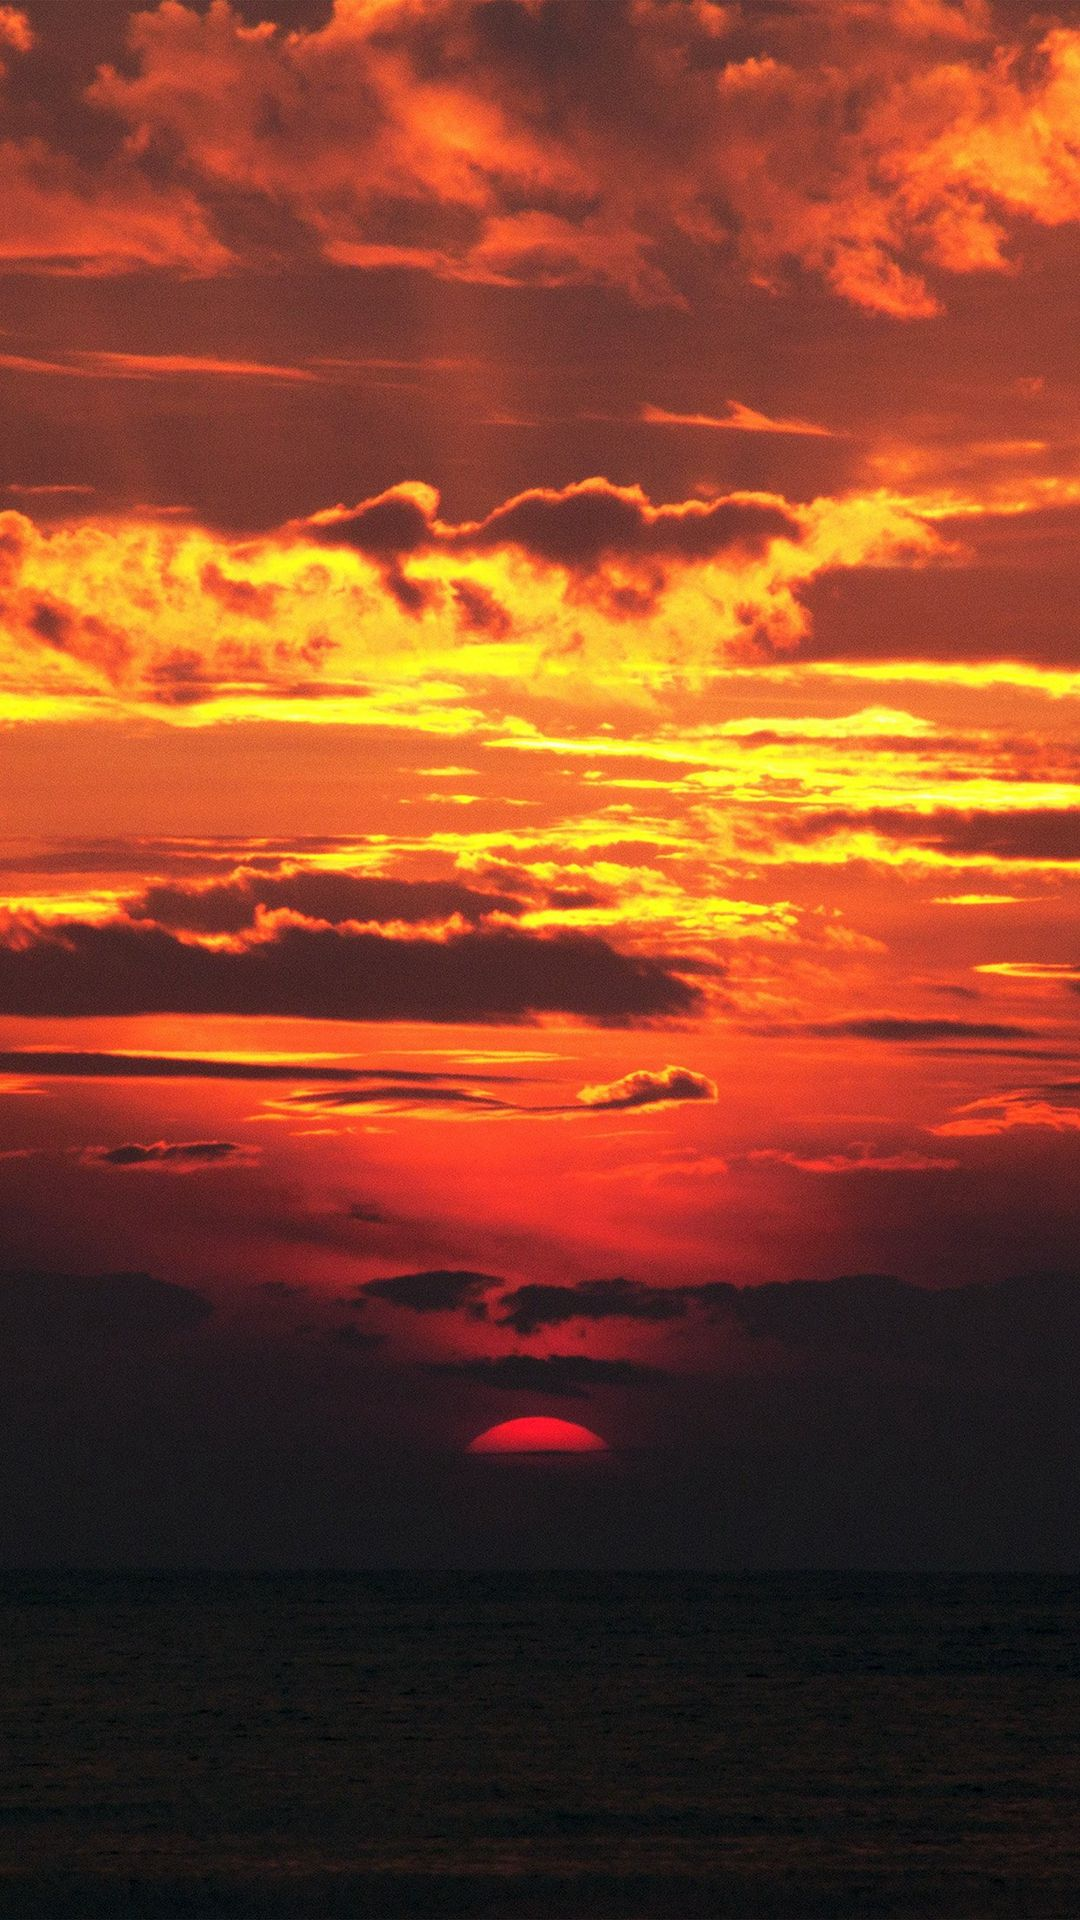 Sunset Red Sky Nature iPhone 6 plus wallpaper Sunset